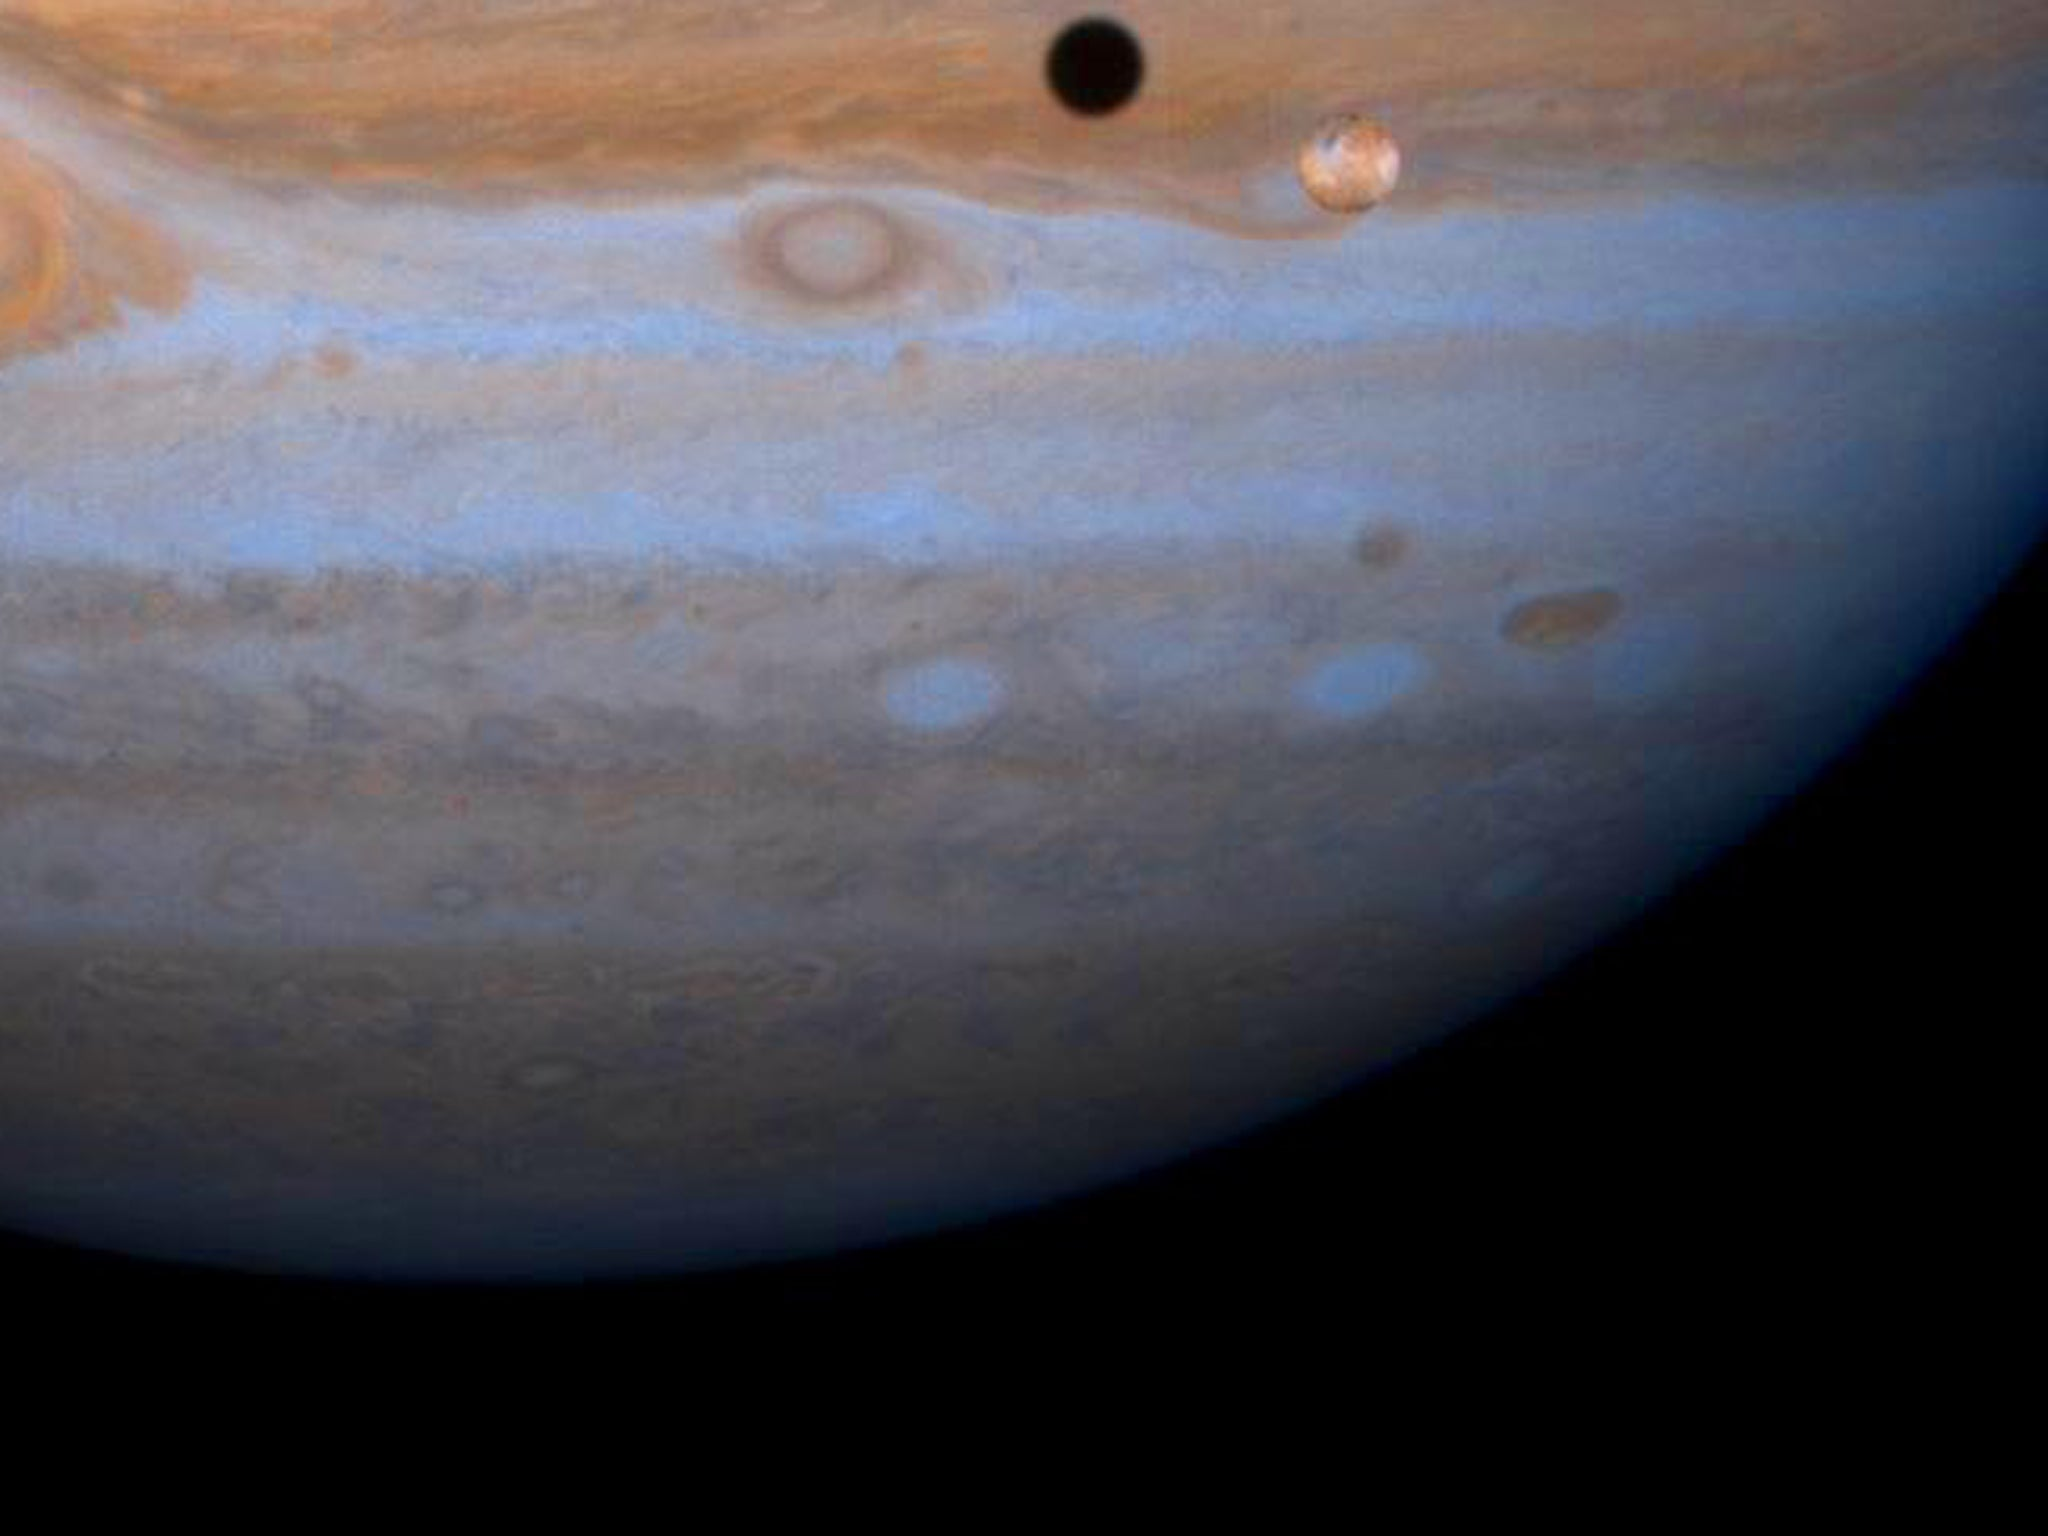 Nasa announcement about Jupiter's moon Europa won't be to say that the moon has aliens, agency clarifies